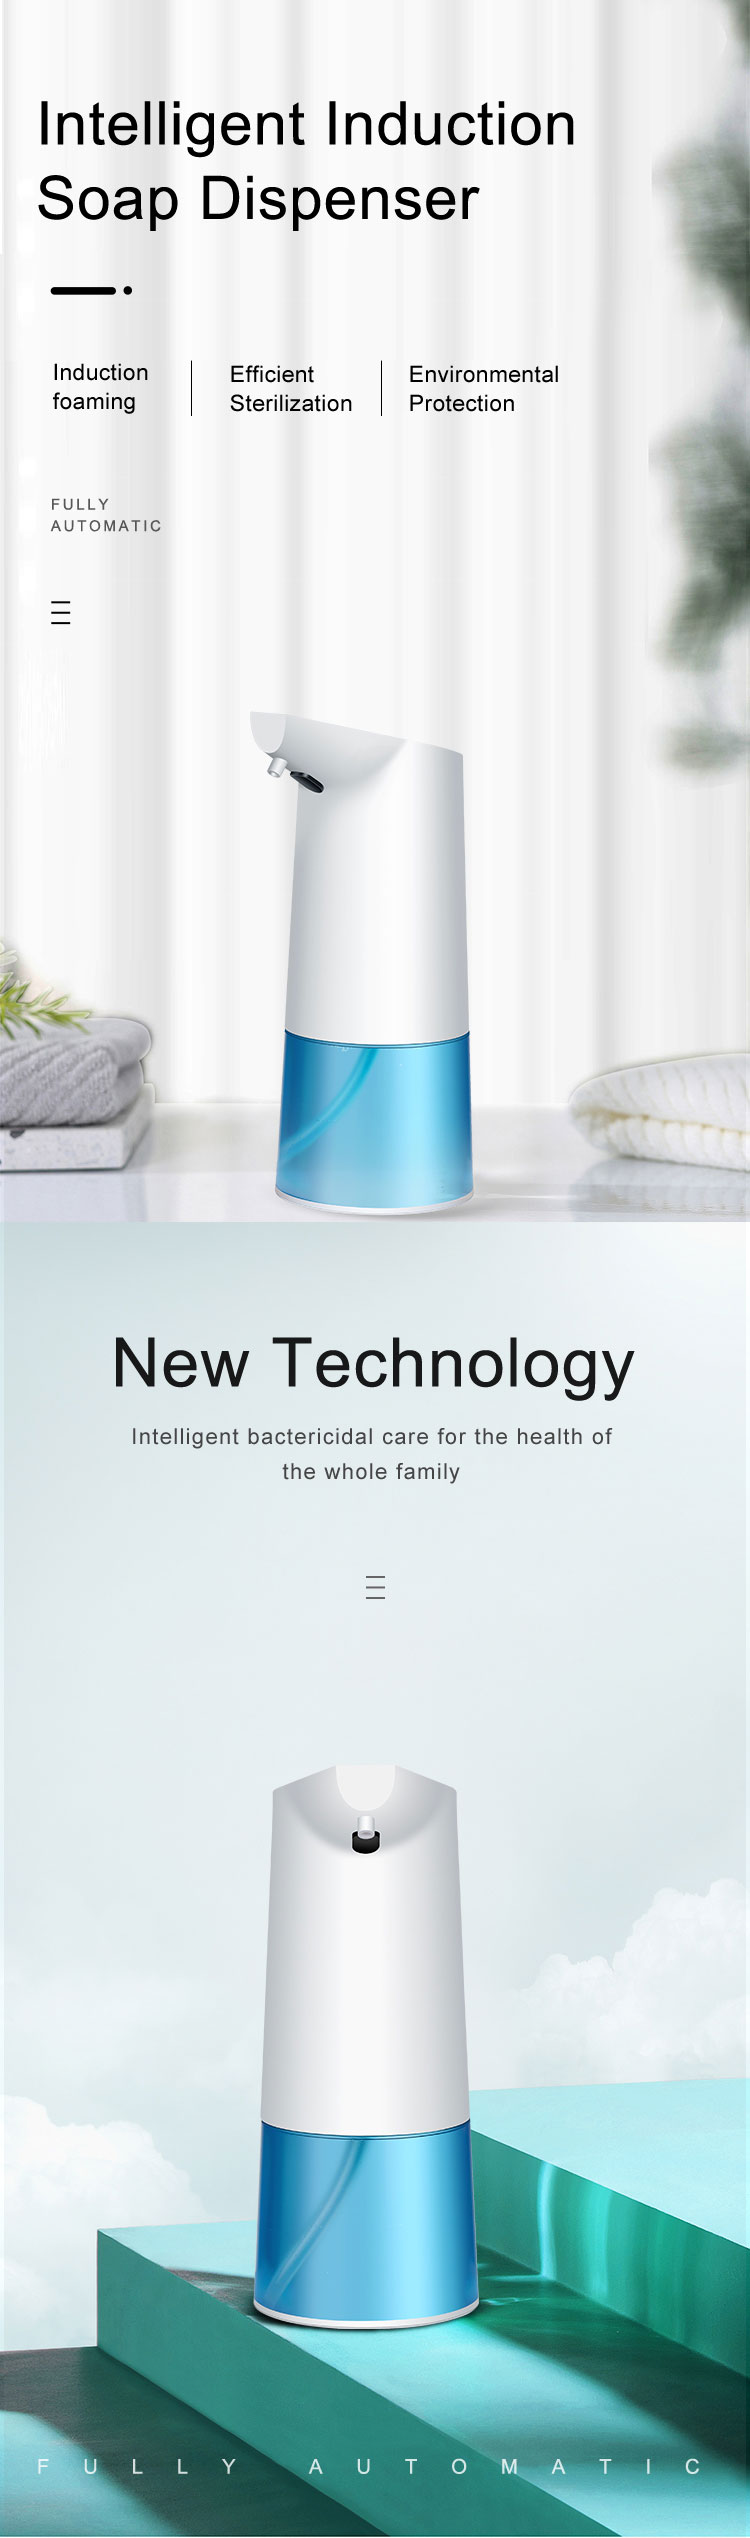 Touchless Bathroom Dispenser Smart Sensor Liquid Soap Dispenser